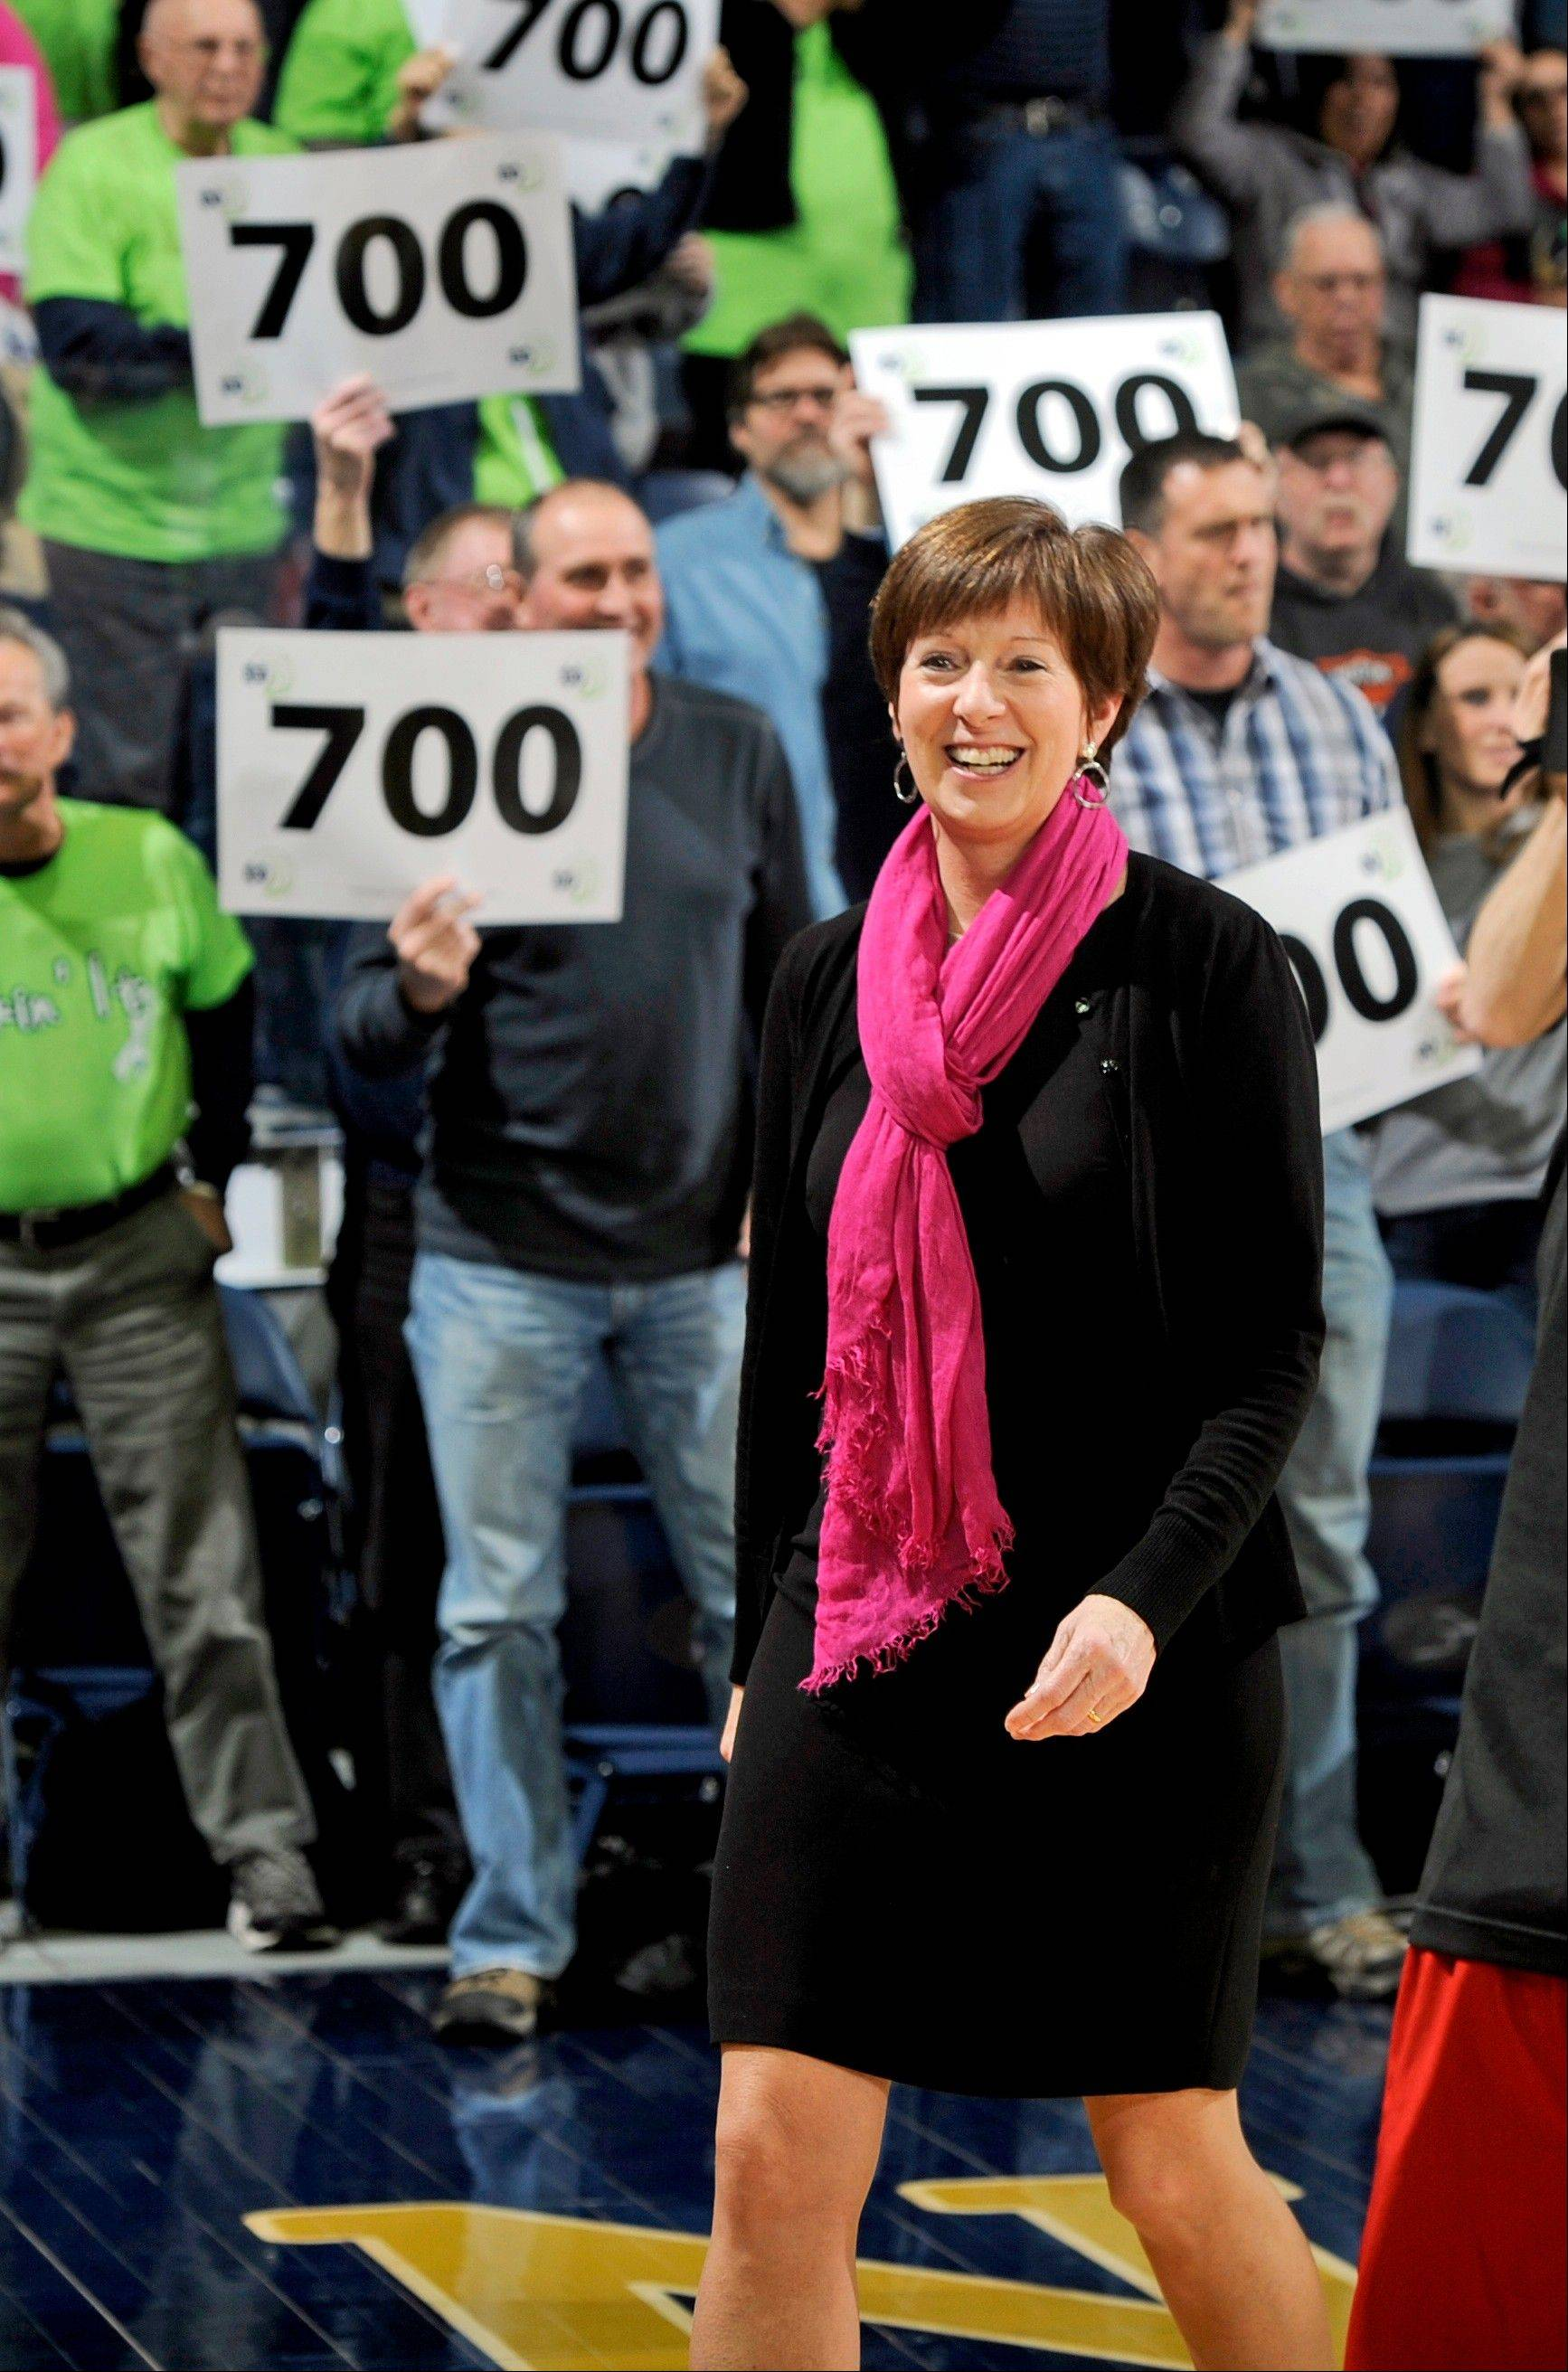 FILE - In this Feb. 11, 2013, file photo, Notre Dame head coach Muffet McGraw reacts to the crowd holding up signs with 700 on them in honor of her 700th career coaching before an NCAA college basketball game against Louisville in South Bend, Ind. McGraw was selected as The Associated Press' women's basketball coach of the year on Saturday, April 6, 2013. (AP Photo/Joe Raymond, File)